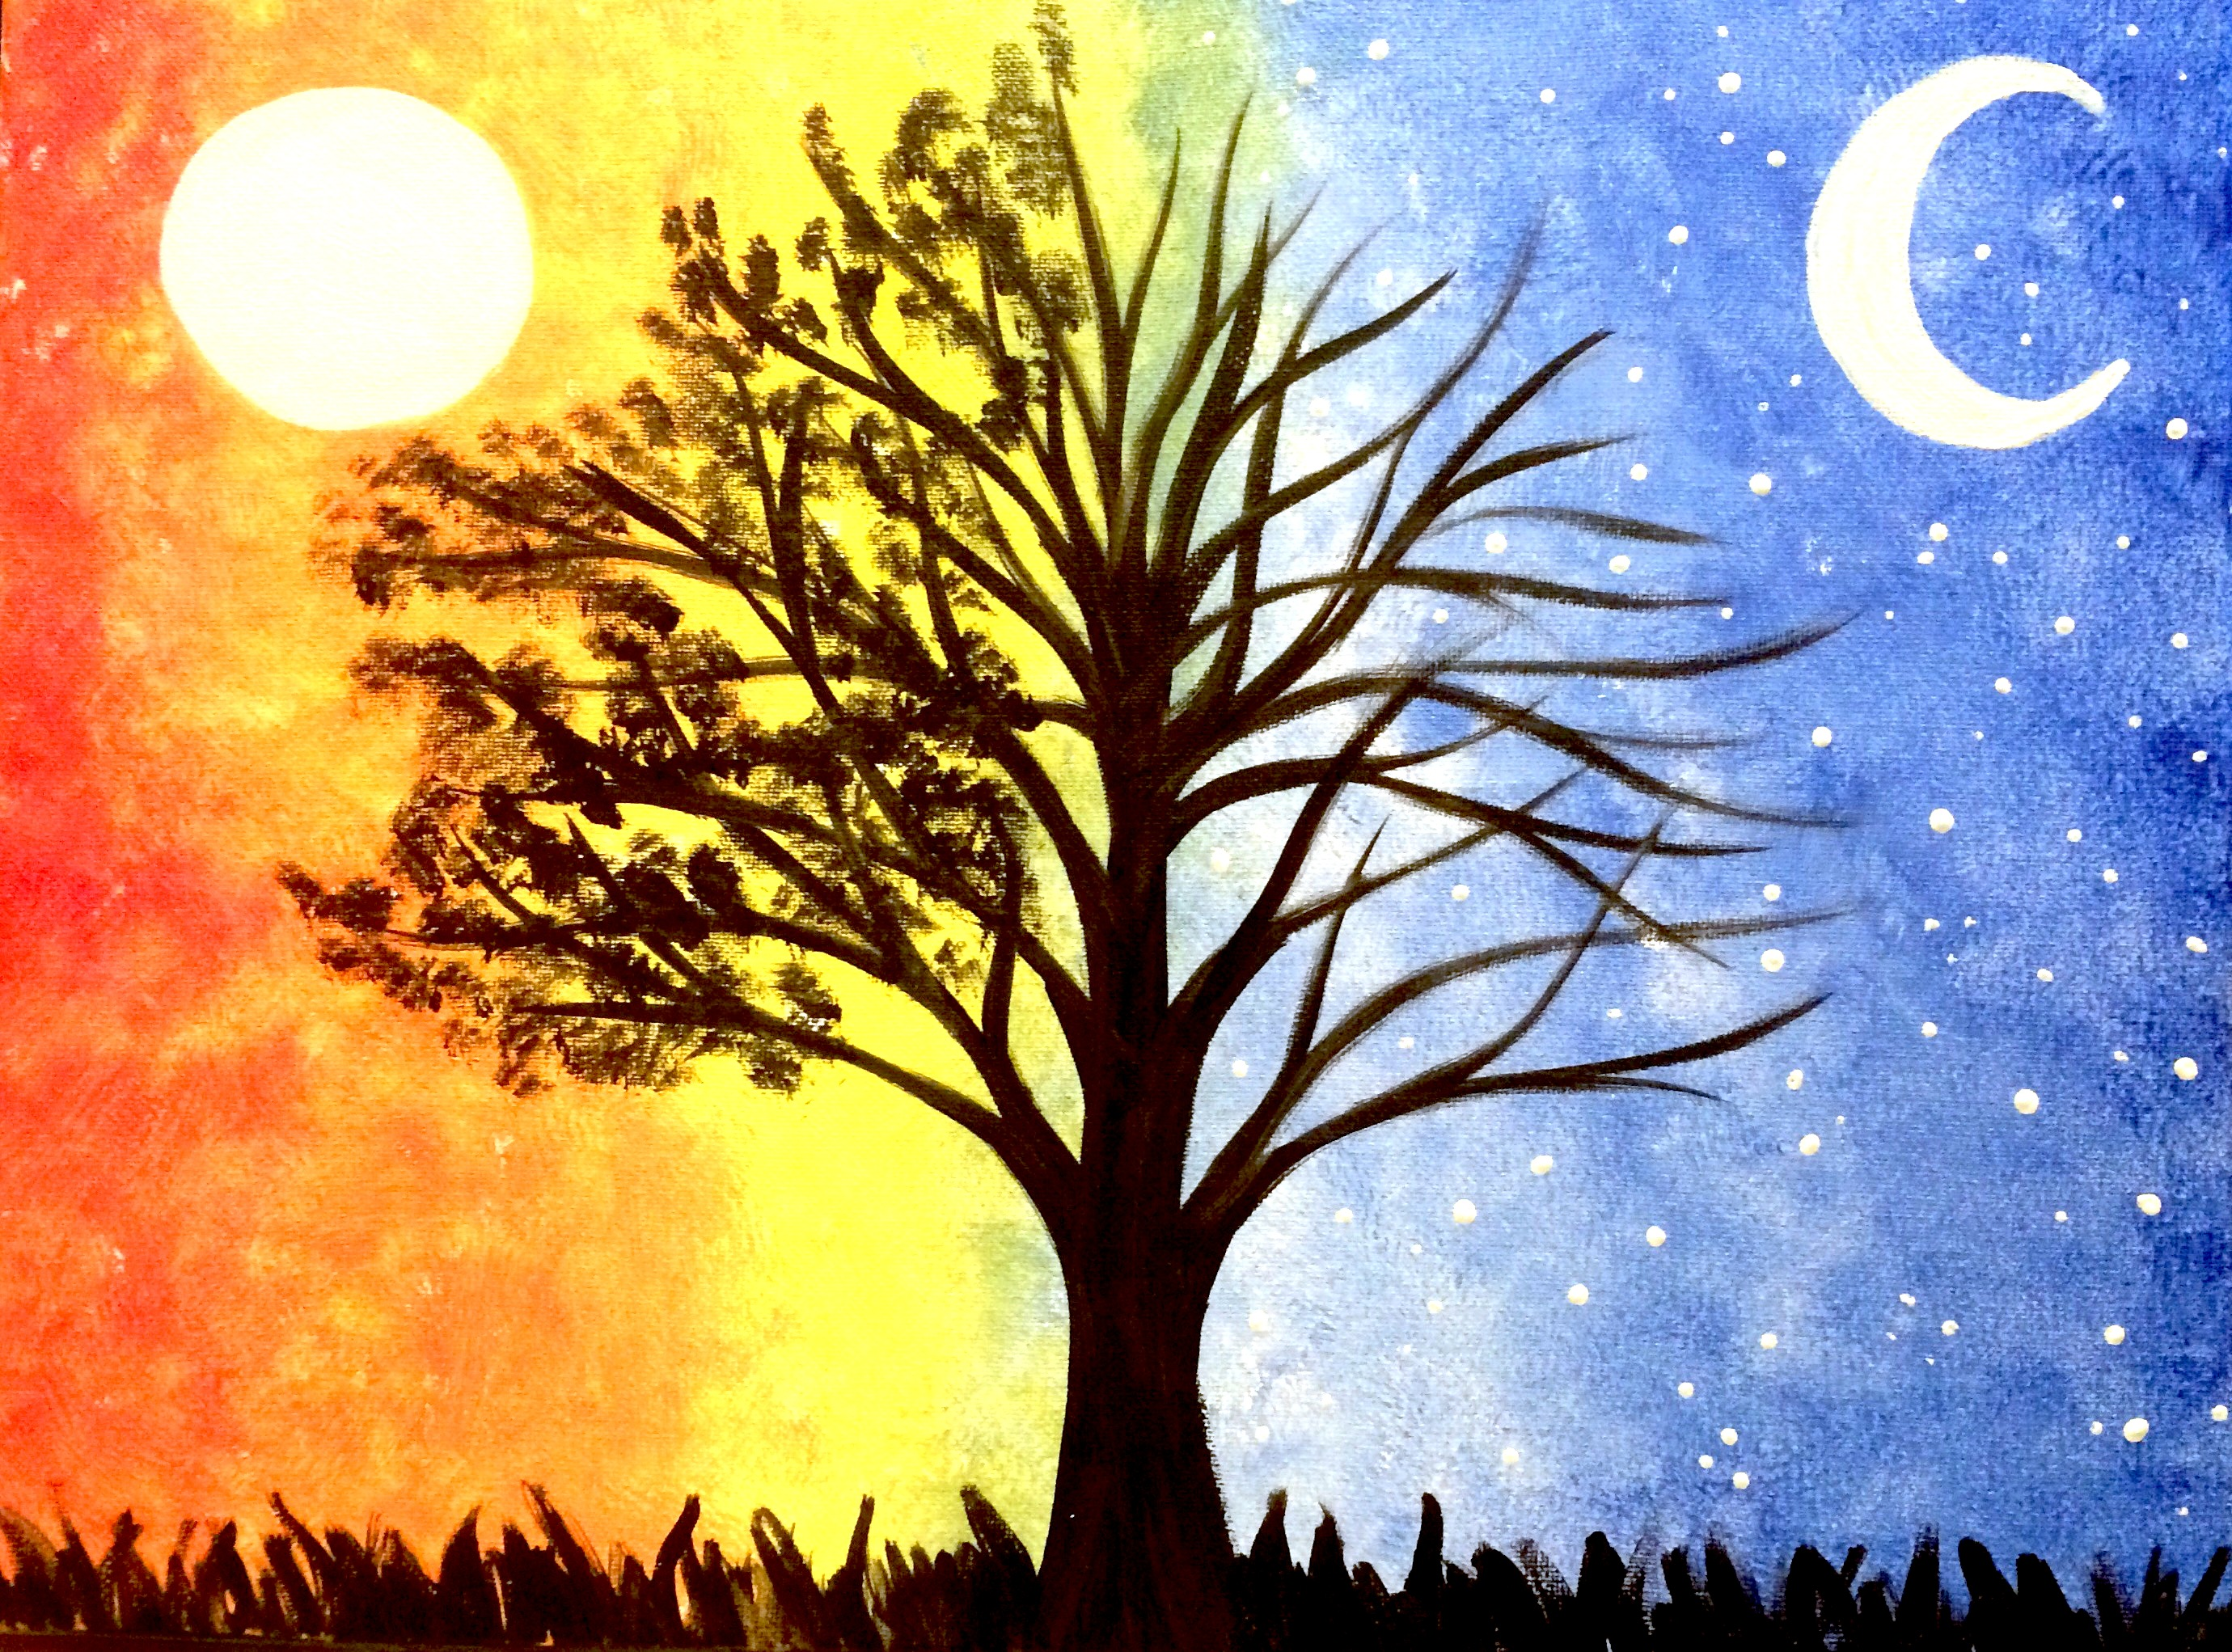 Moon And Tree Pictures To Paint